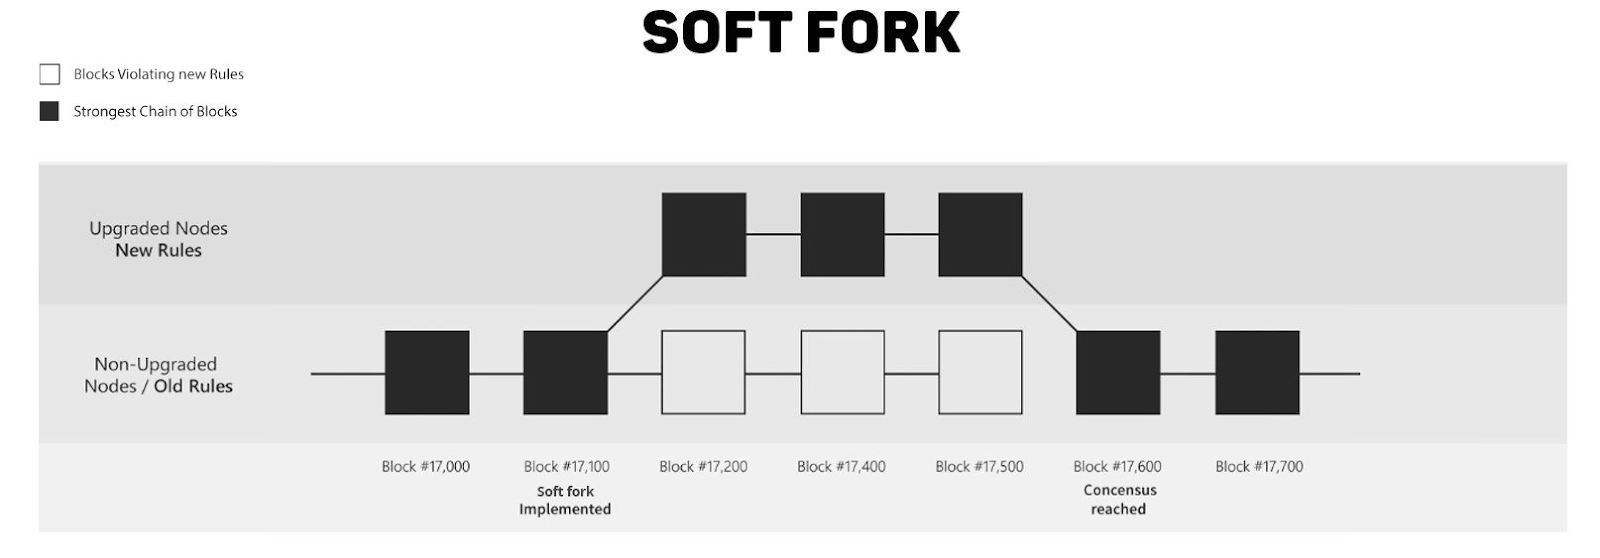 A visualisation of blockchain soft forks